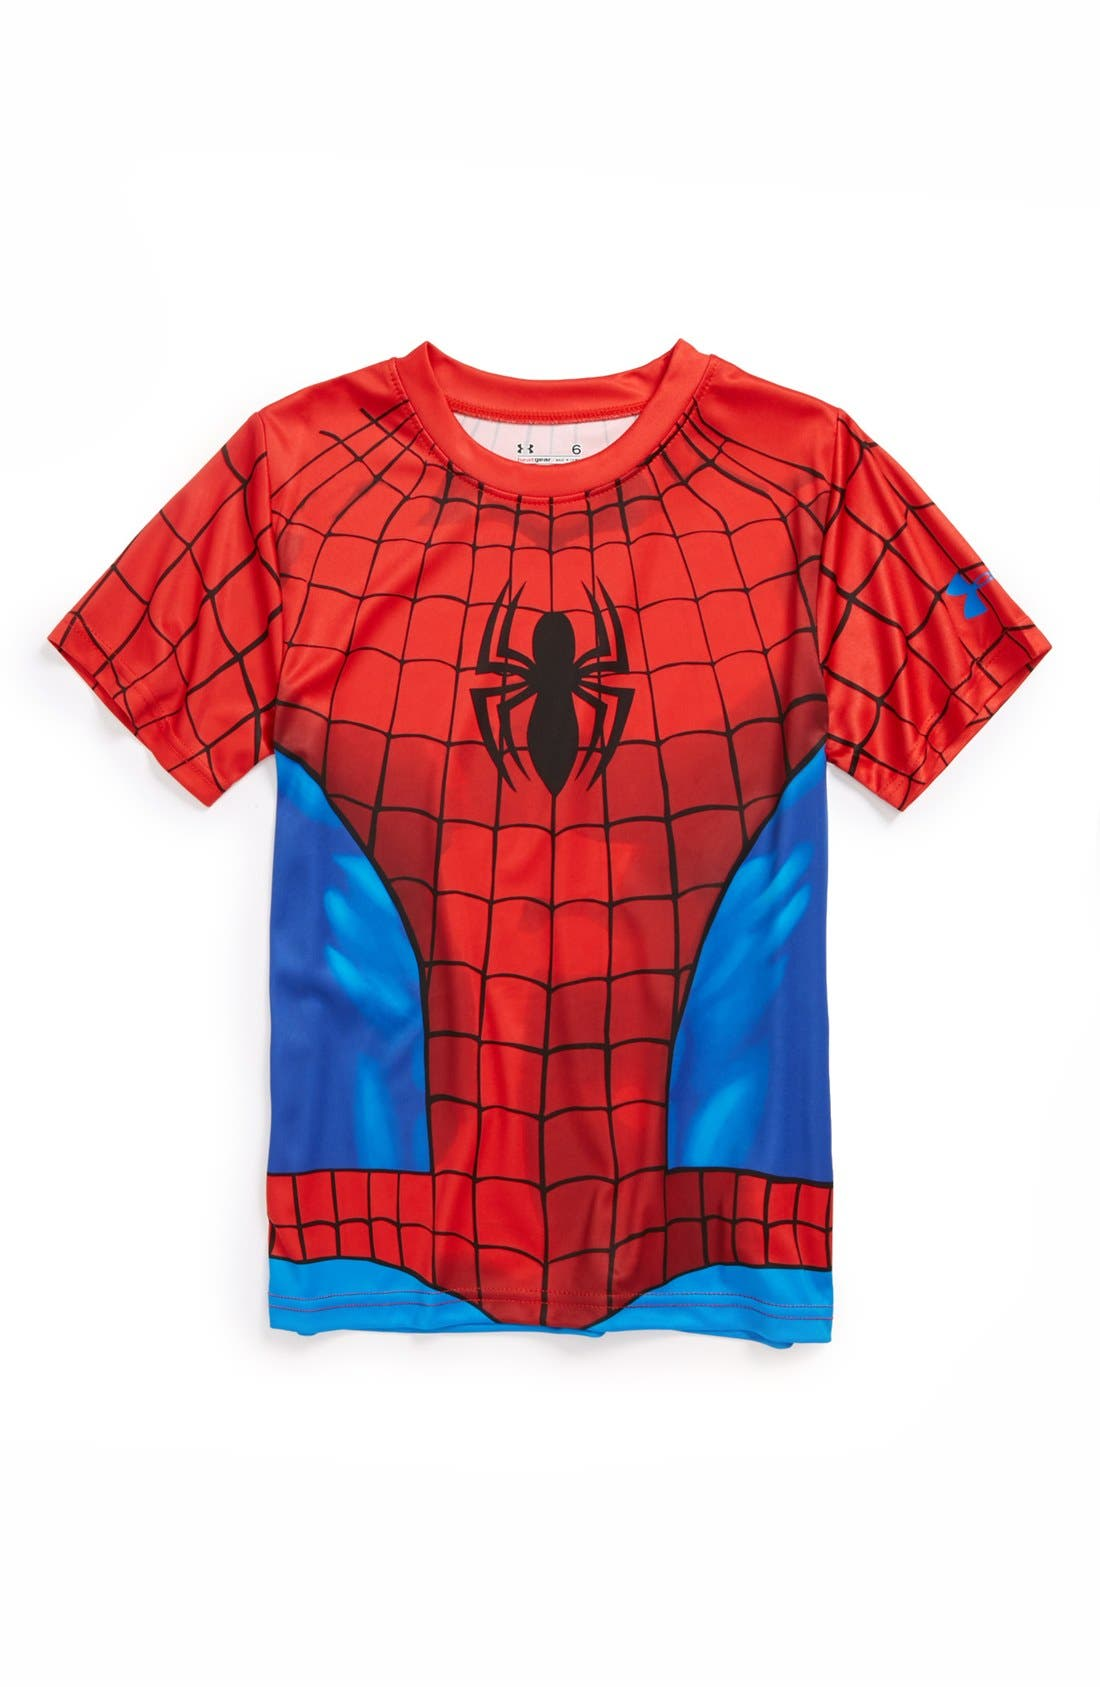 Alternate Image 1 Selected - Under Armour 'Spider-Man - All Over' HeatGear® T-Shirt (Little Boys)